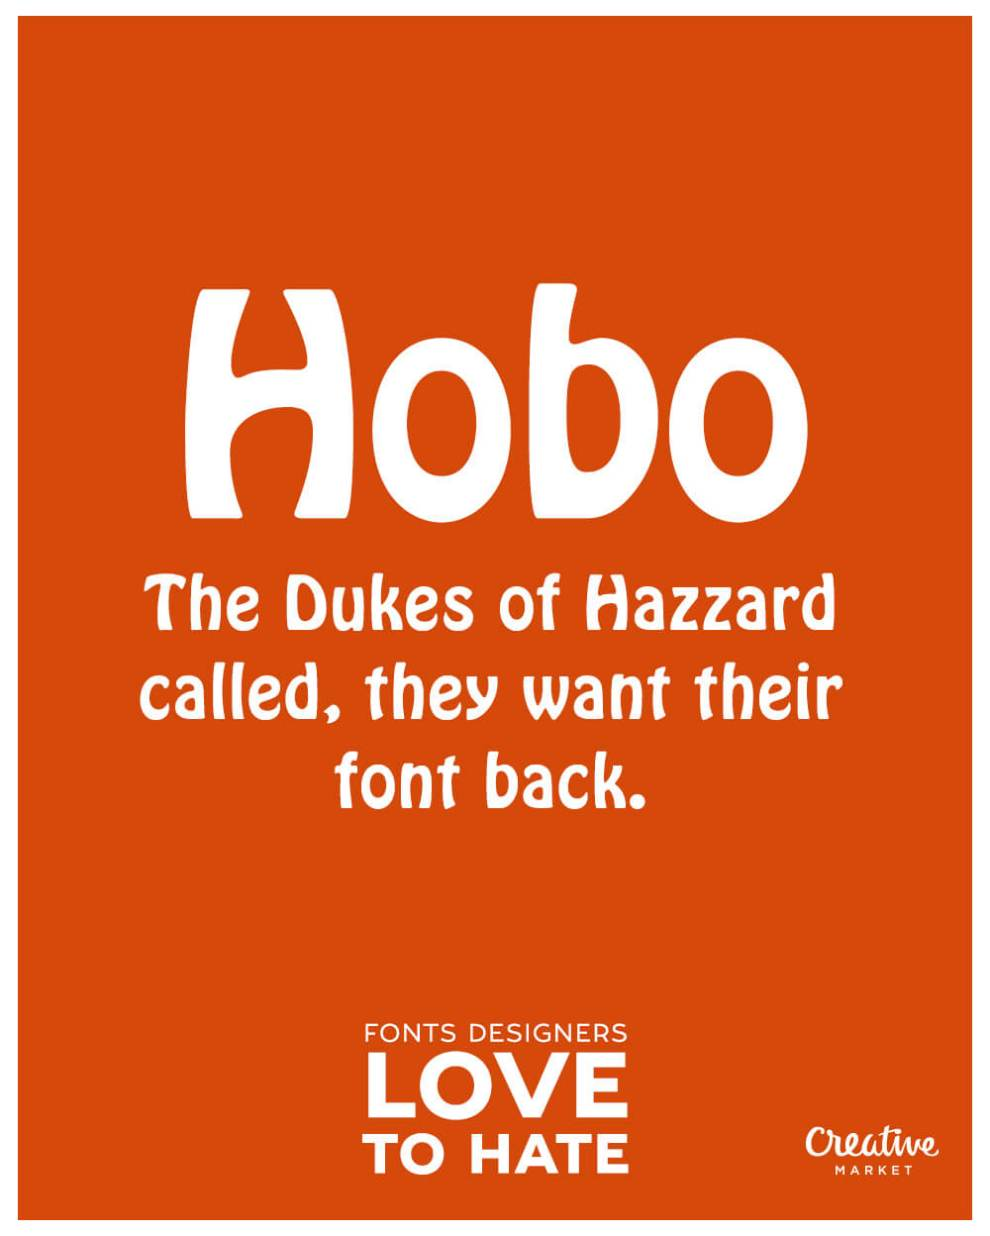 10 fonts designers love to hate: Hobo